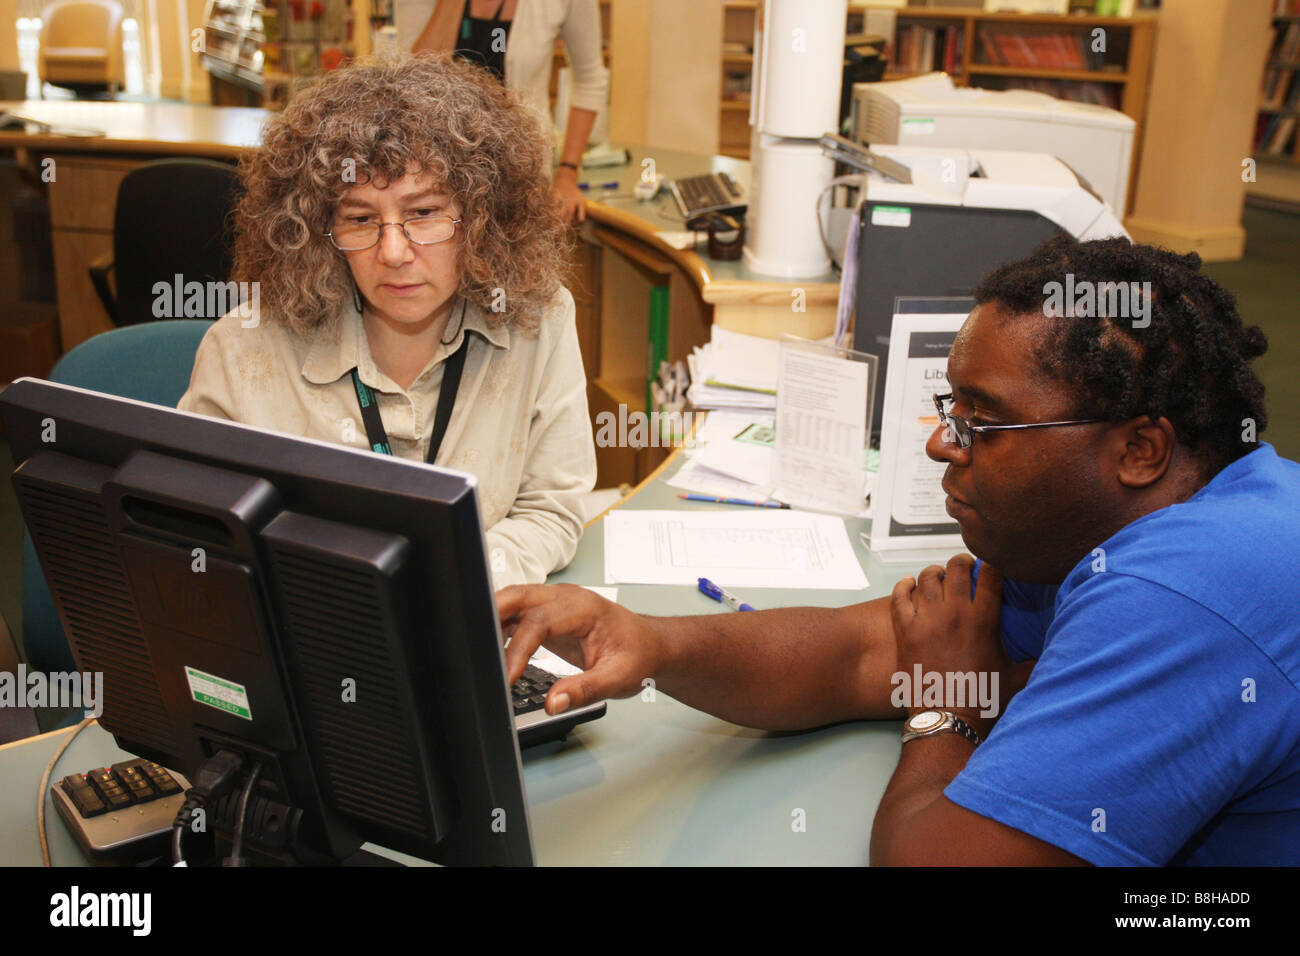 Man making enquiry at library front desk - Stock Image